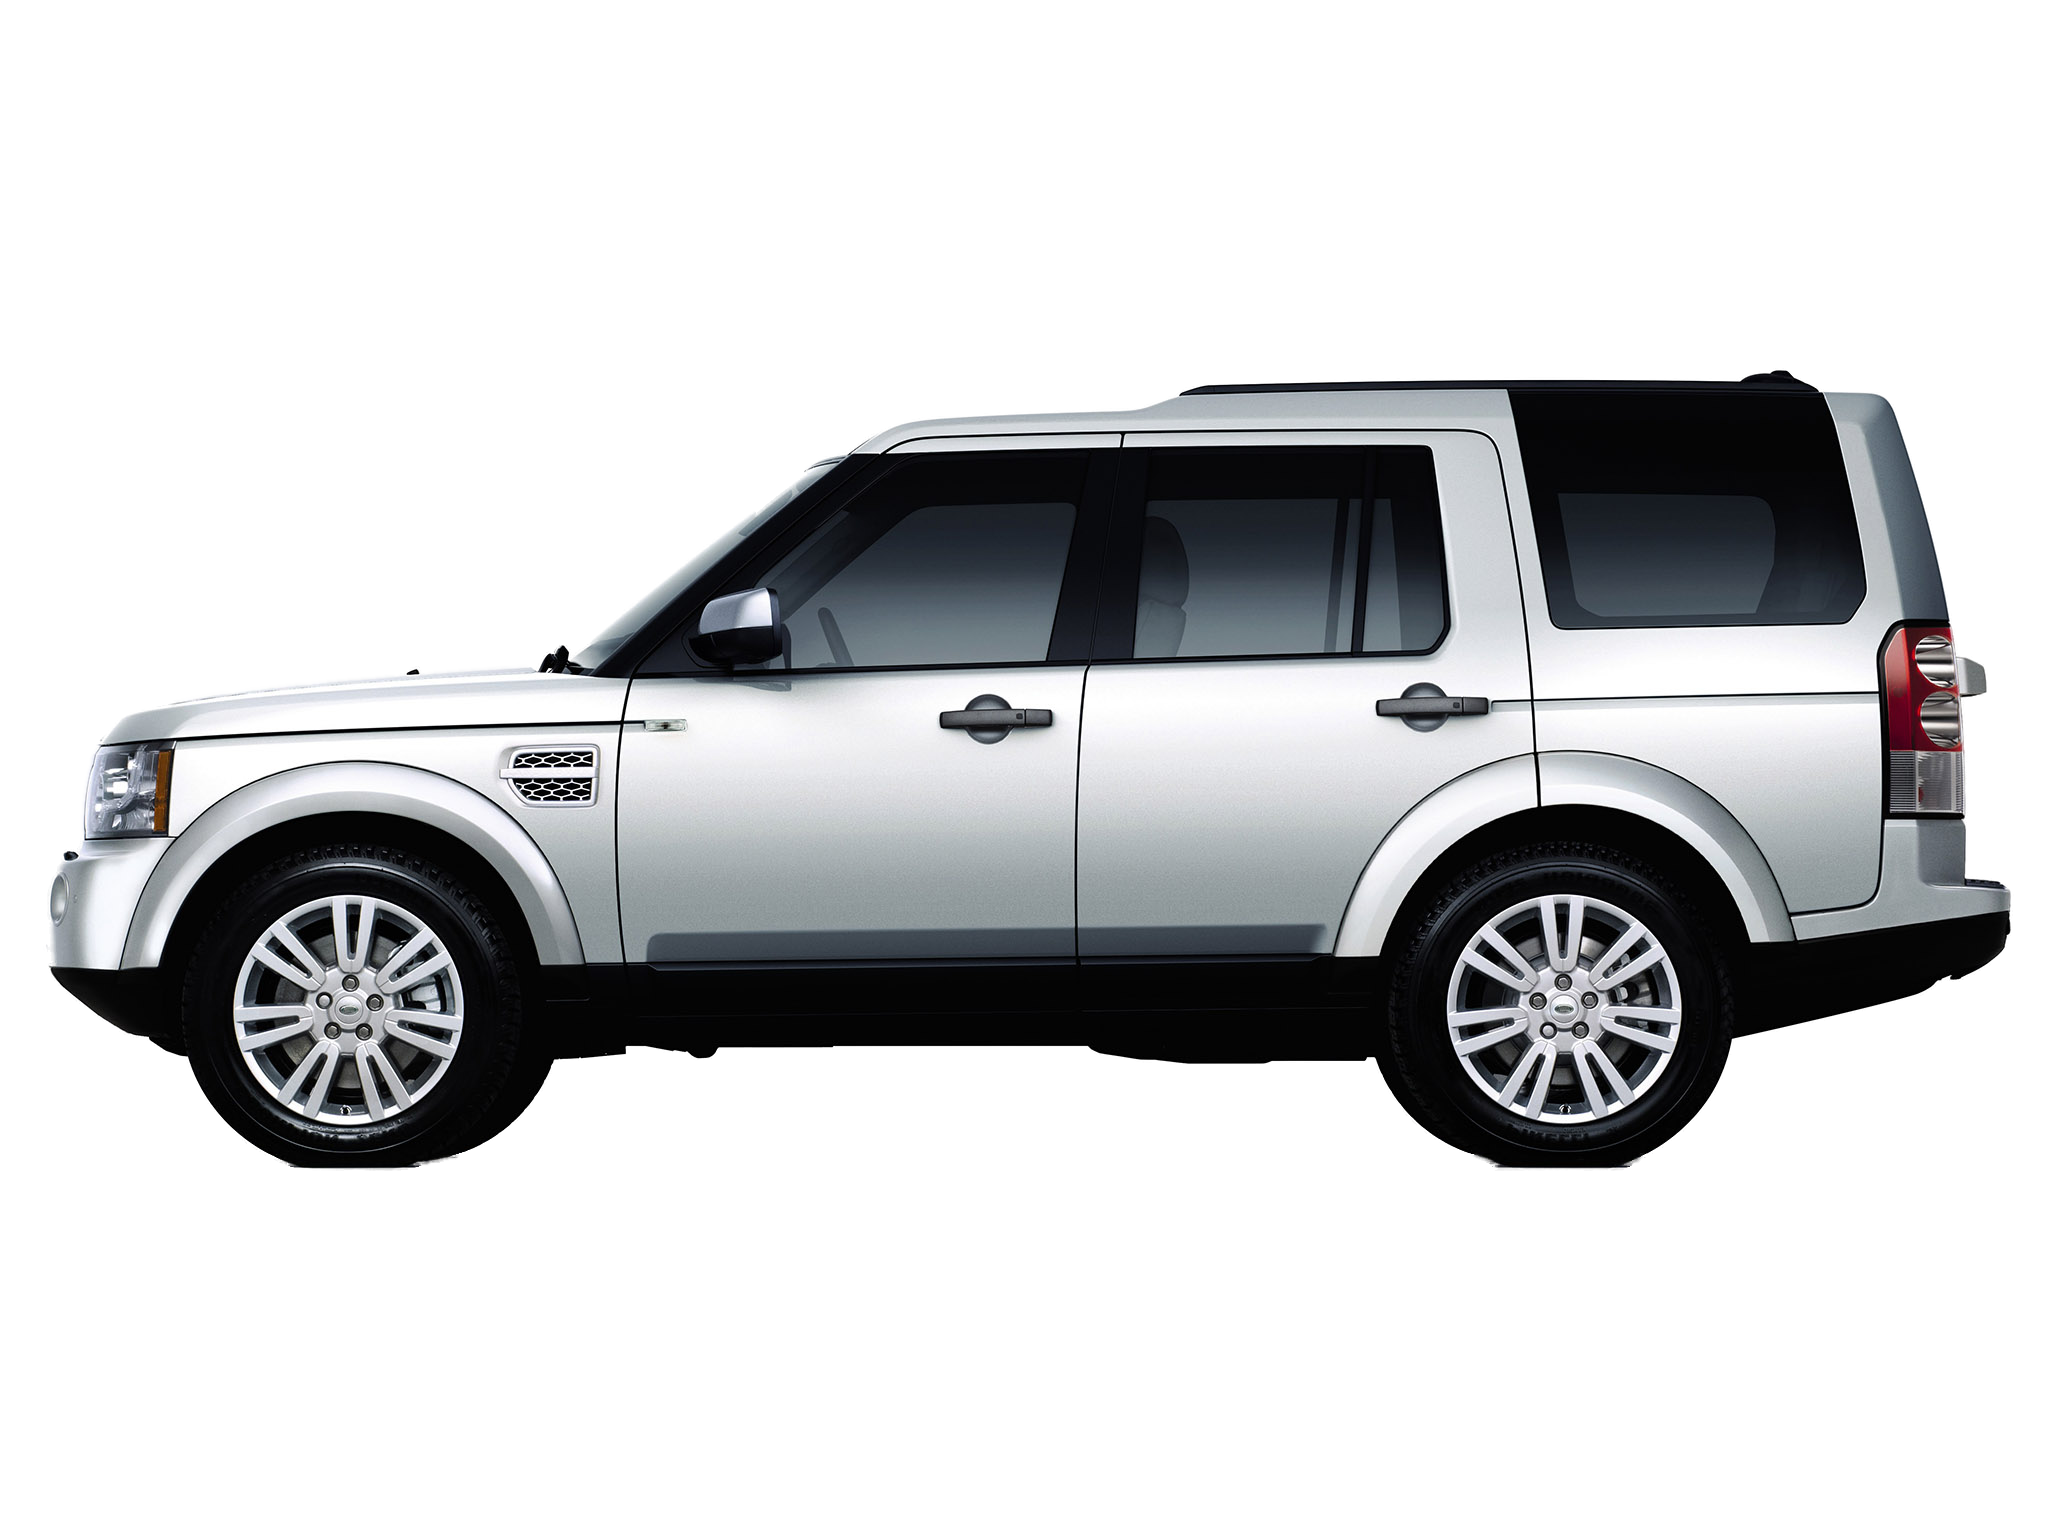 rover discovery 4 hse 2013 side view